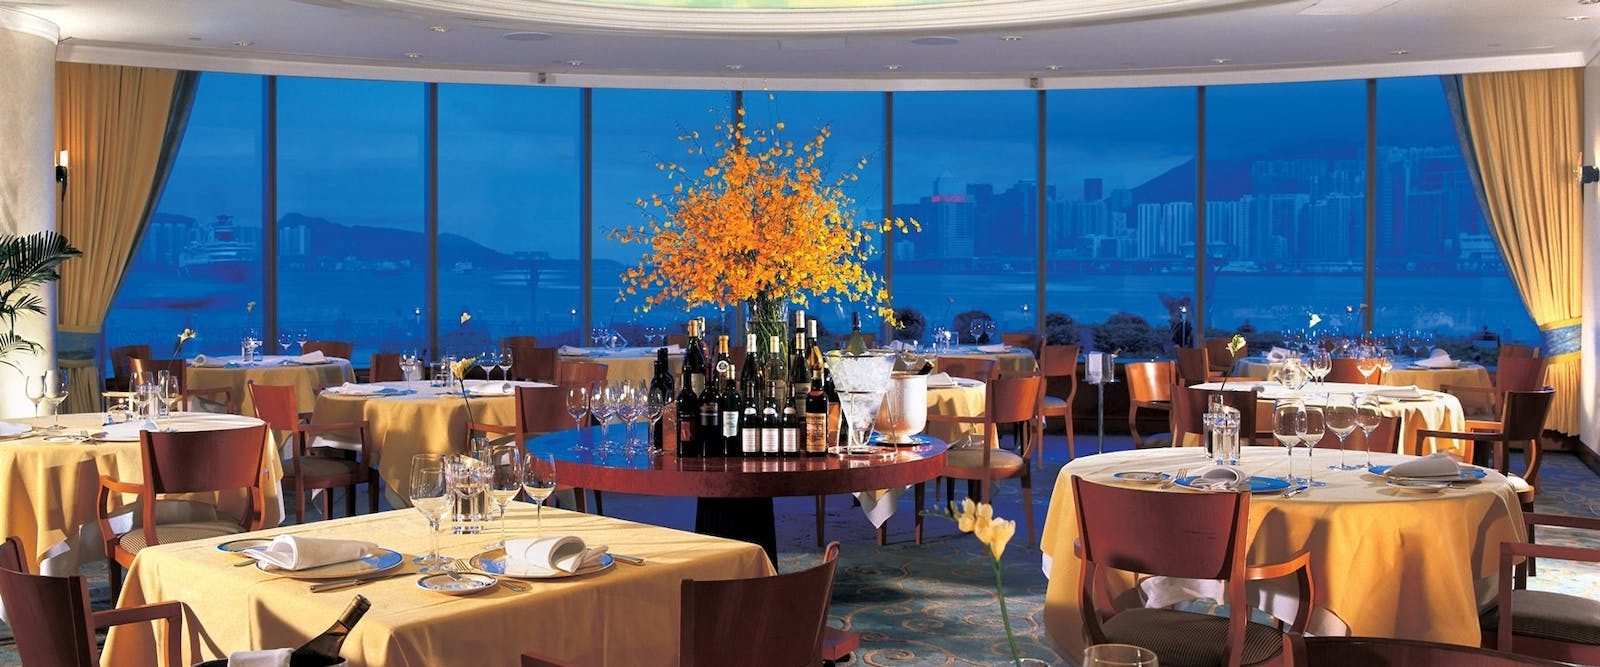 harbour grill restaurant at Harbour Grand Kowloon